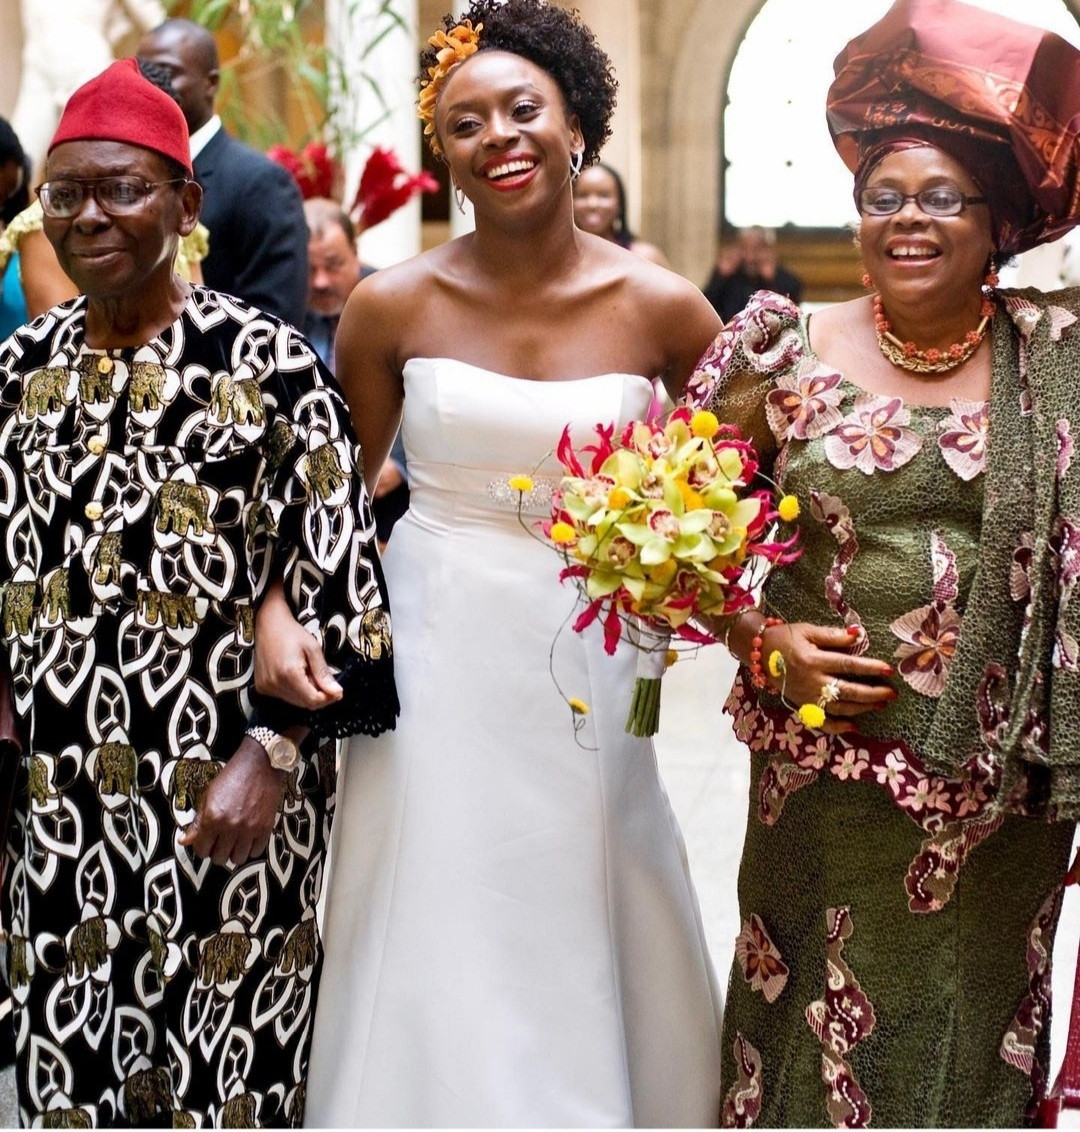 Chimamanda Adichie shares photos from her wedding as she reveals how she broke with convention to inspire young women/men